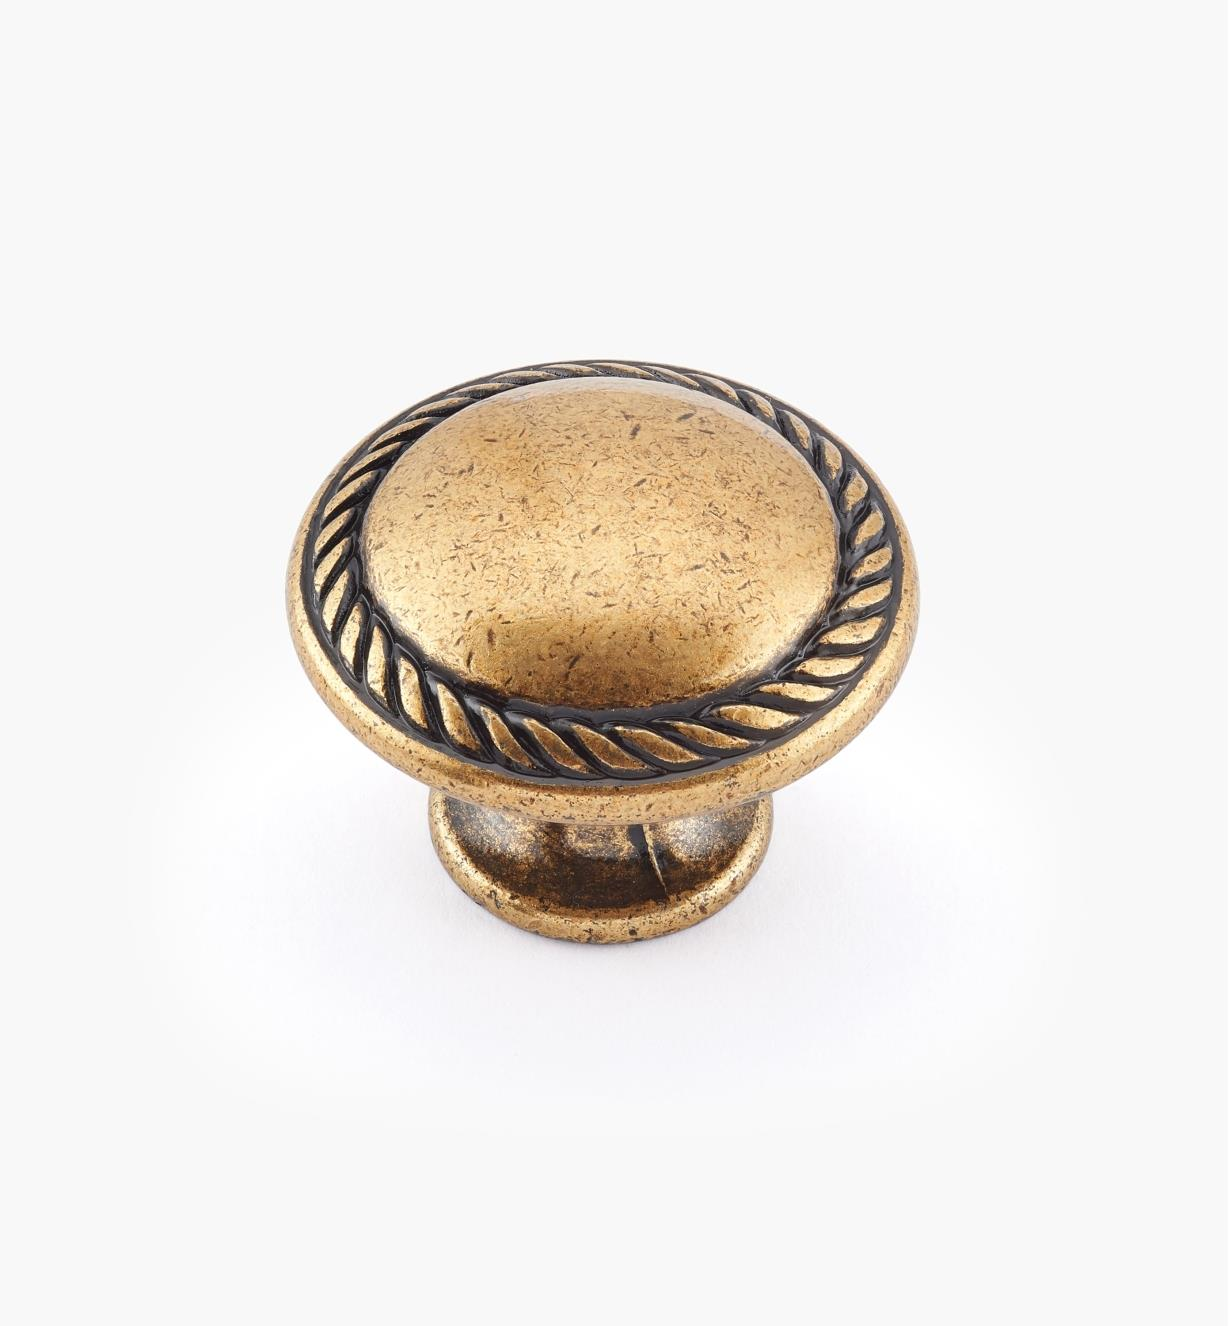 01A2253 - Large Burnished Bronze Roped Cast Knob